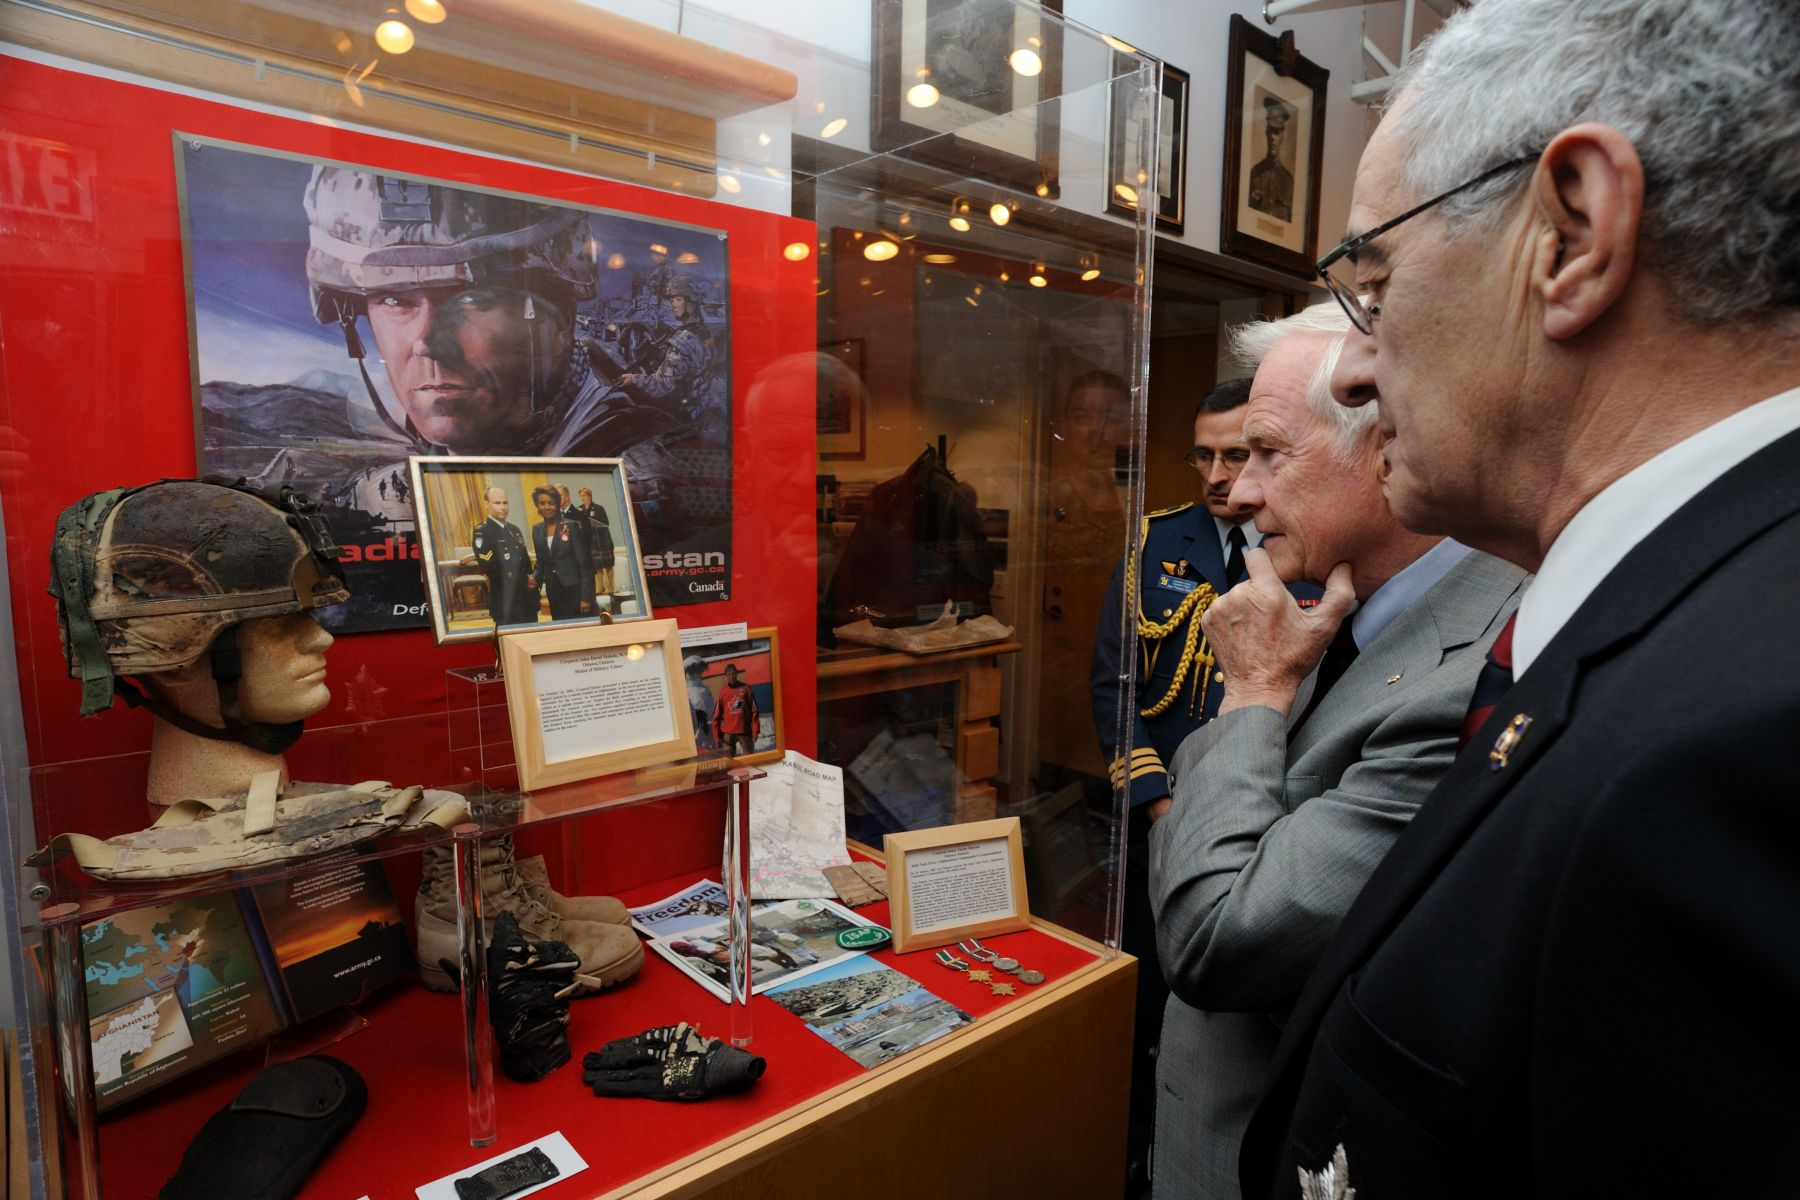 In the Regimental museum, His excellency looked at a display honouring Corporal John David Makela, M.M.V., from Ottawa, Ontario, who received the Medal of Military Valour. On October 16, 2006, Corporal Makela prevented a fatal attack on his combat logistics patrol by a suicide bomber in Afghanistan. The explosion engulfed Corporal Makela's vehicle and seriously burned him. His valiant and courageous actions inevitably prevented the bomber from reaching his intended target and saved the lives of the other soldiers in the convoy.